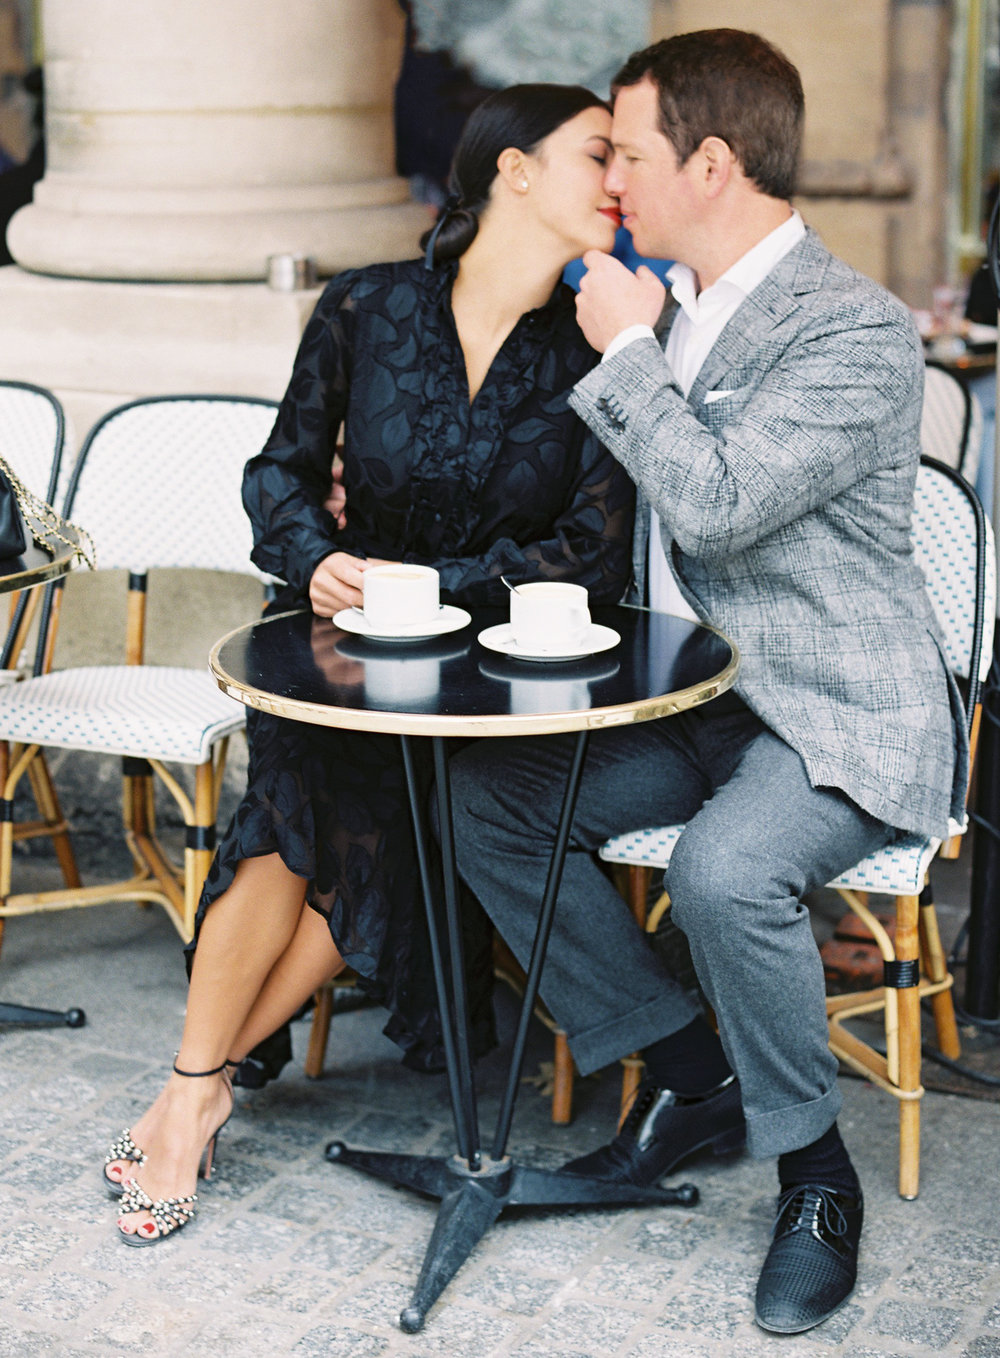 Paris engagement photography-Carrie King Photographer-13.jpg